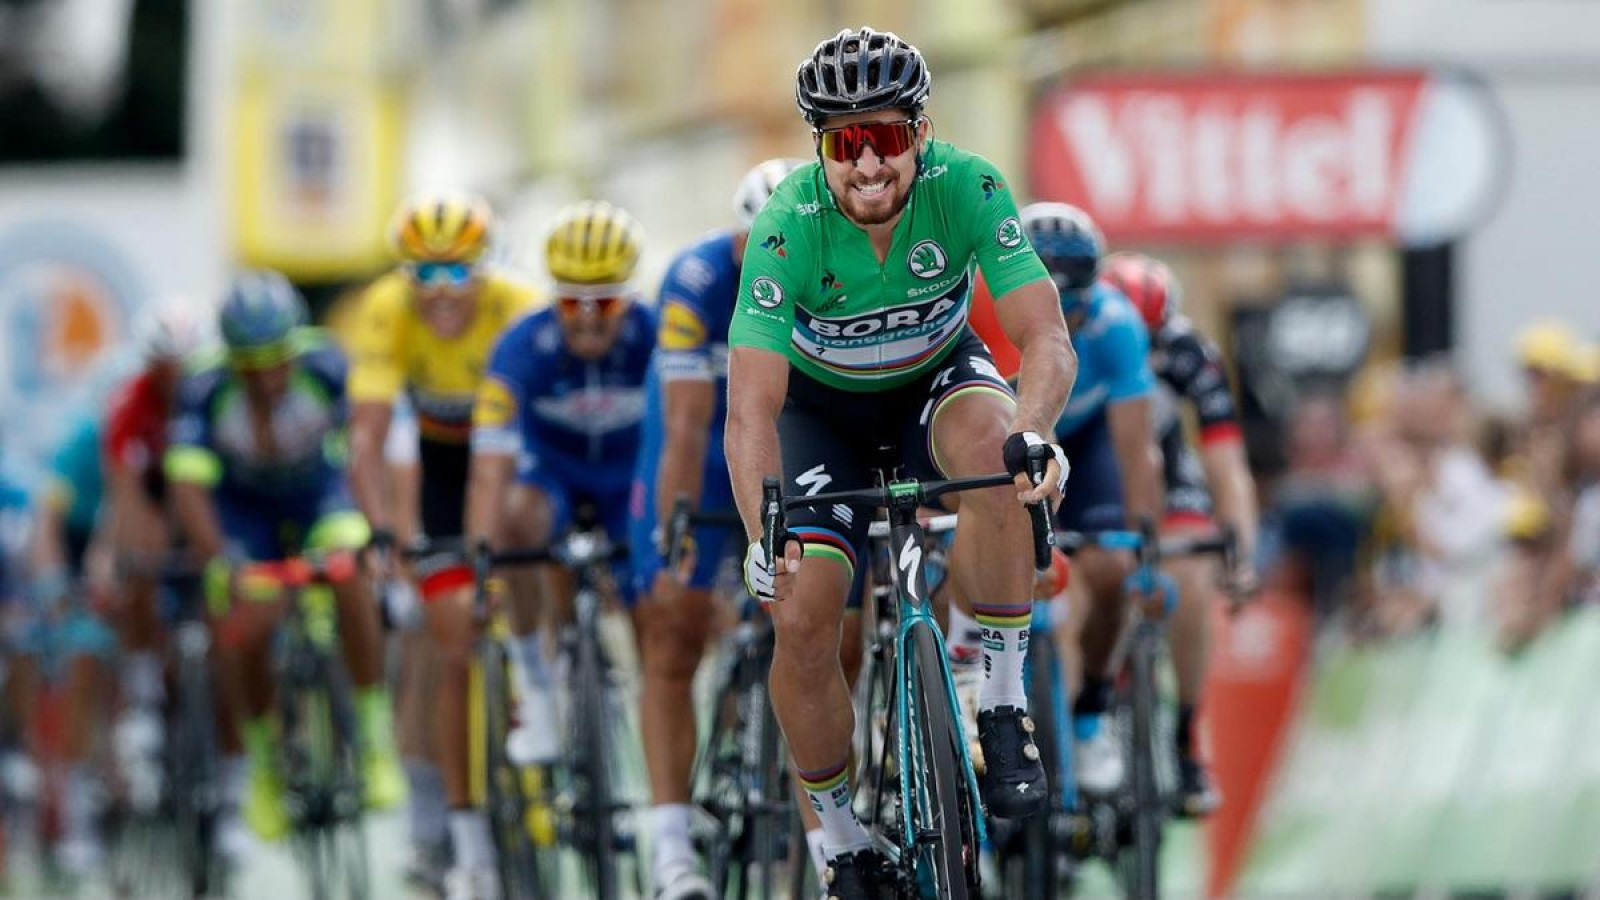 Peter Sagan Wins 2019 Tour de France Stage 5 After Several Near Misses 10